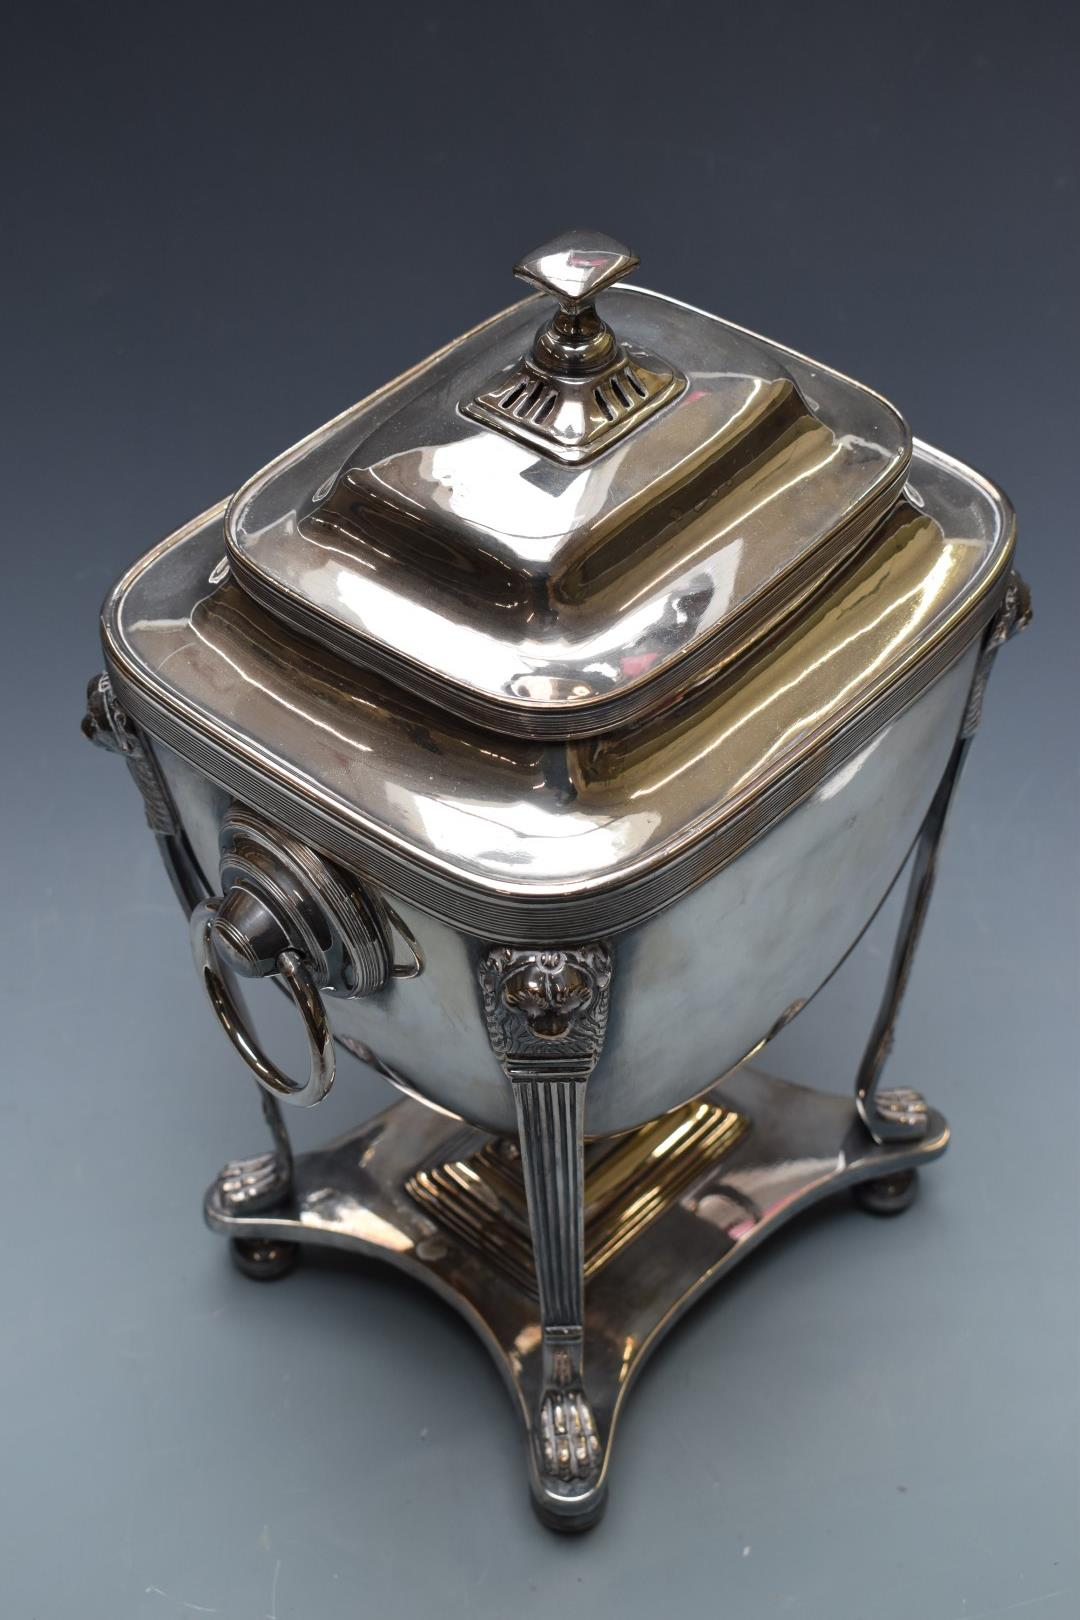 19thC silver plated samovar of classical form, with lions mask and paw supports, H41cm - Image 3 of 4